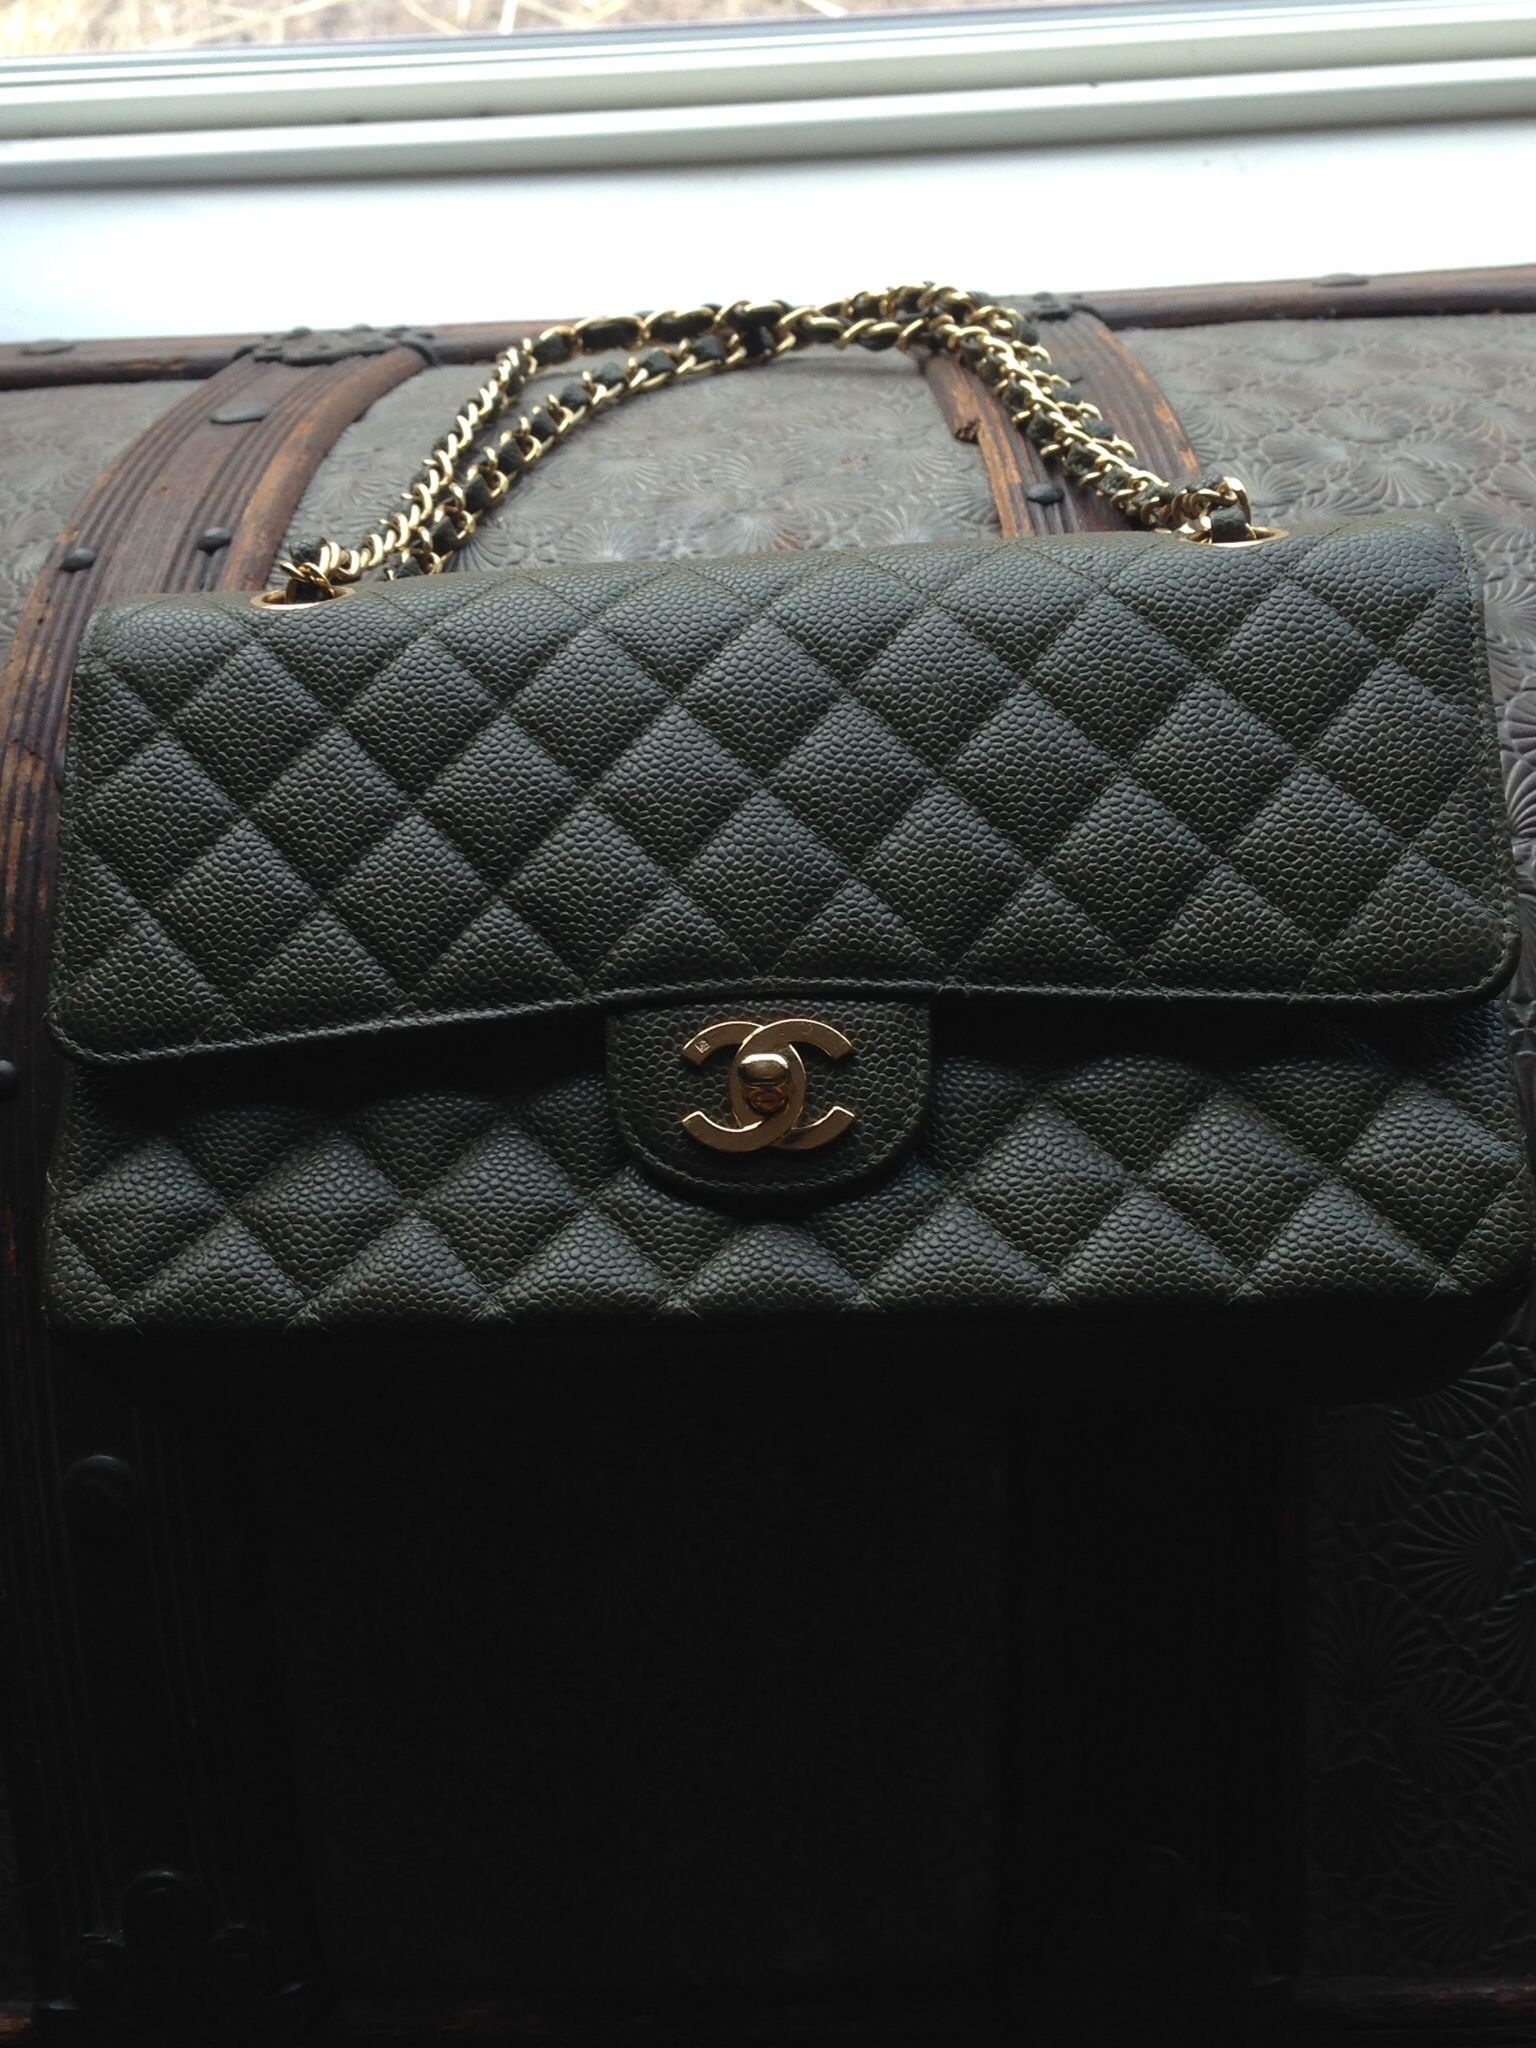 690e1fc46cb4 My Chanel bag, bought at Saks Fifth Avenue in Phoenix Arizona ...